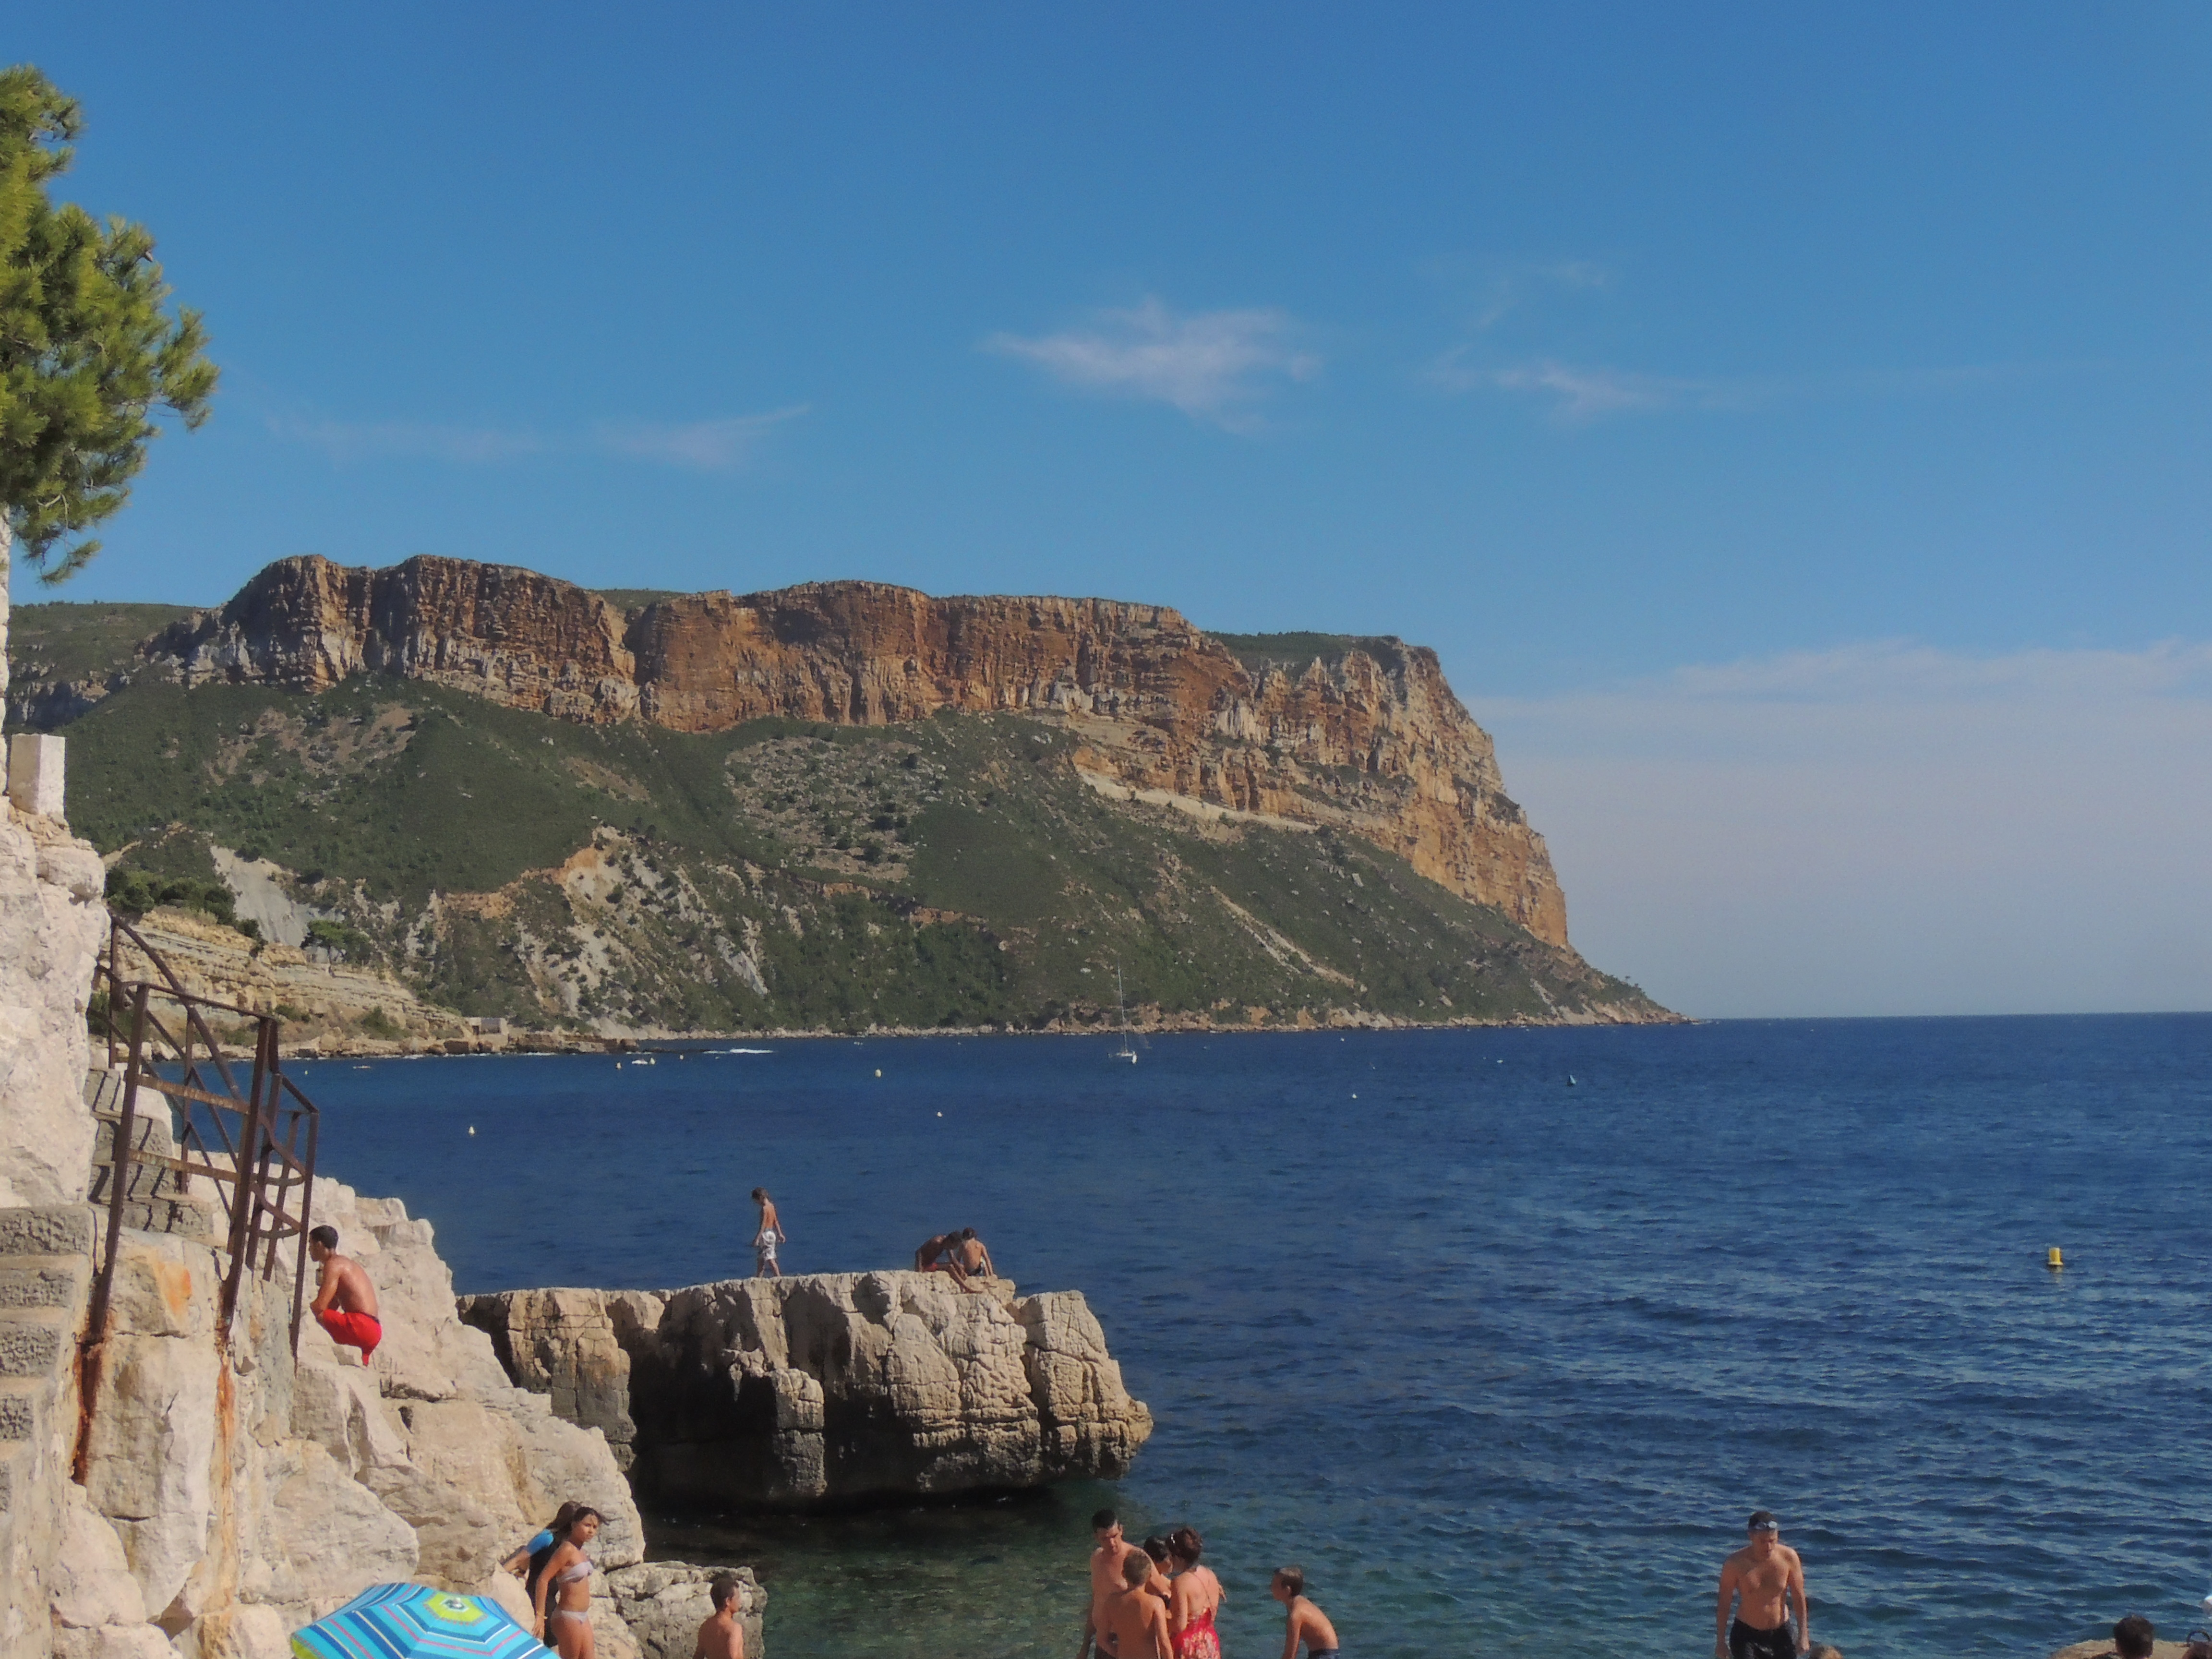 From the beach at Cassis